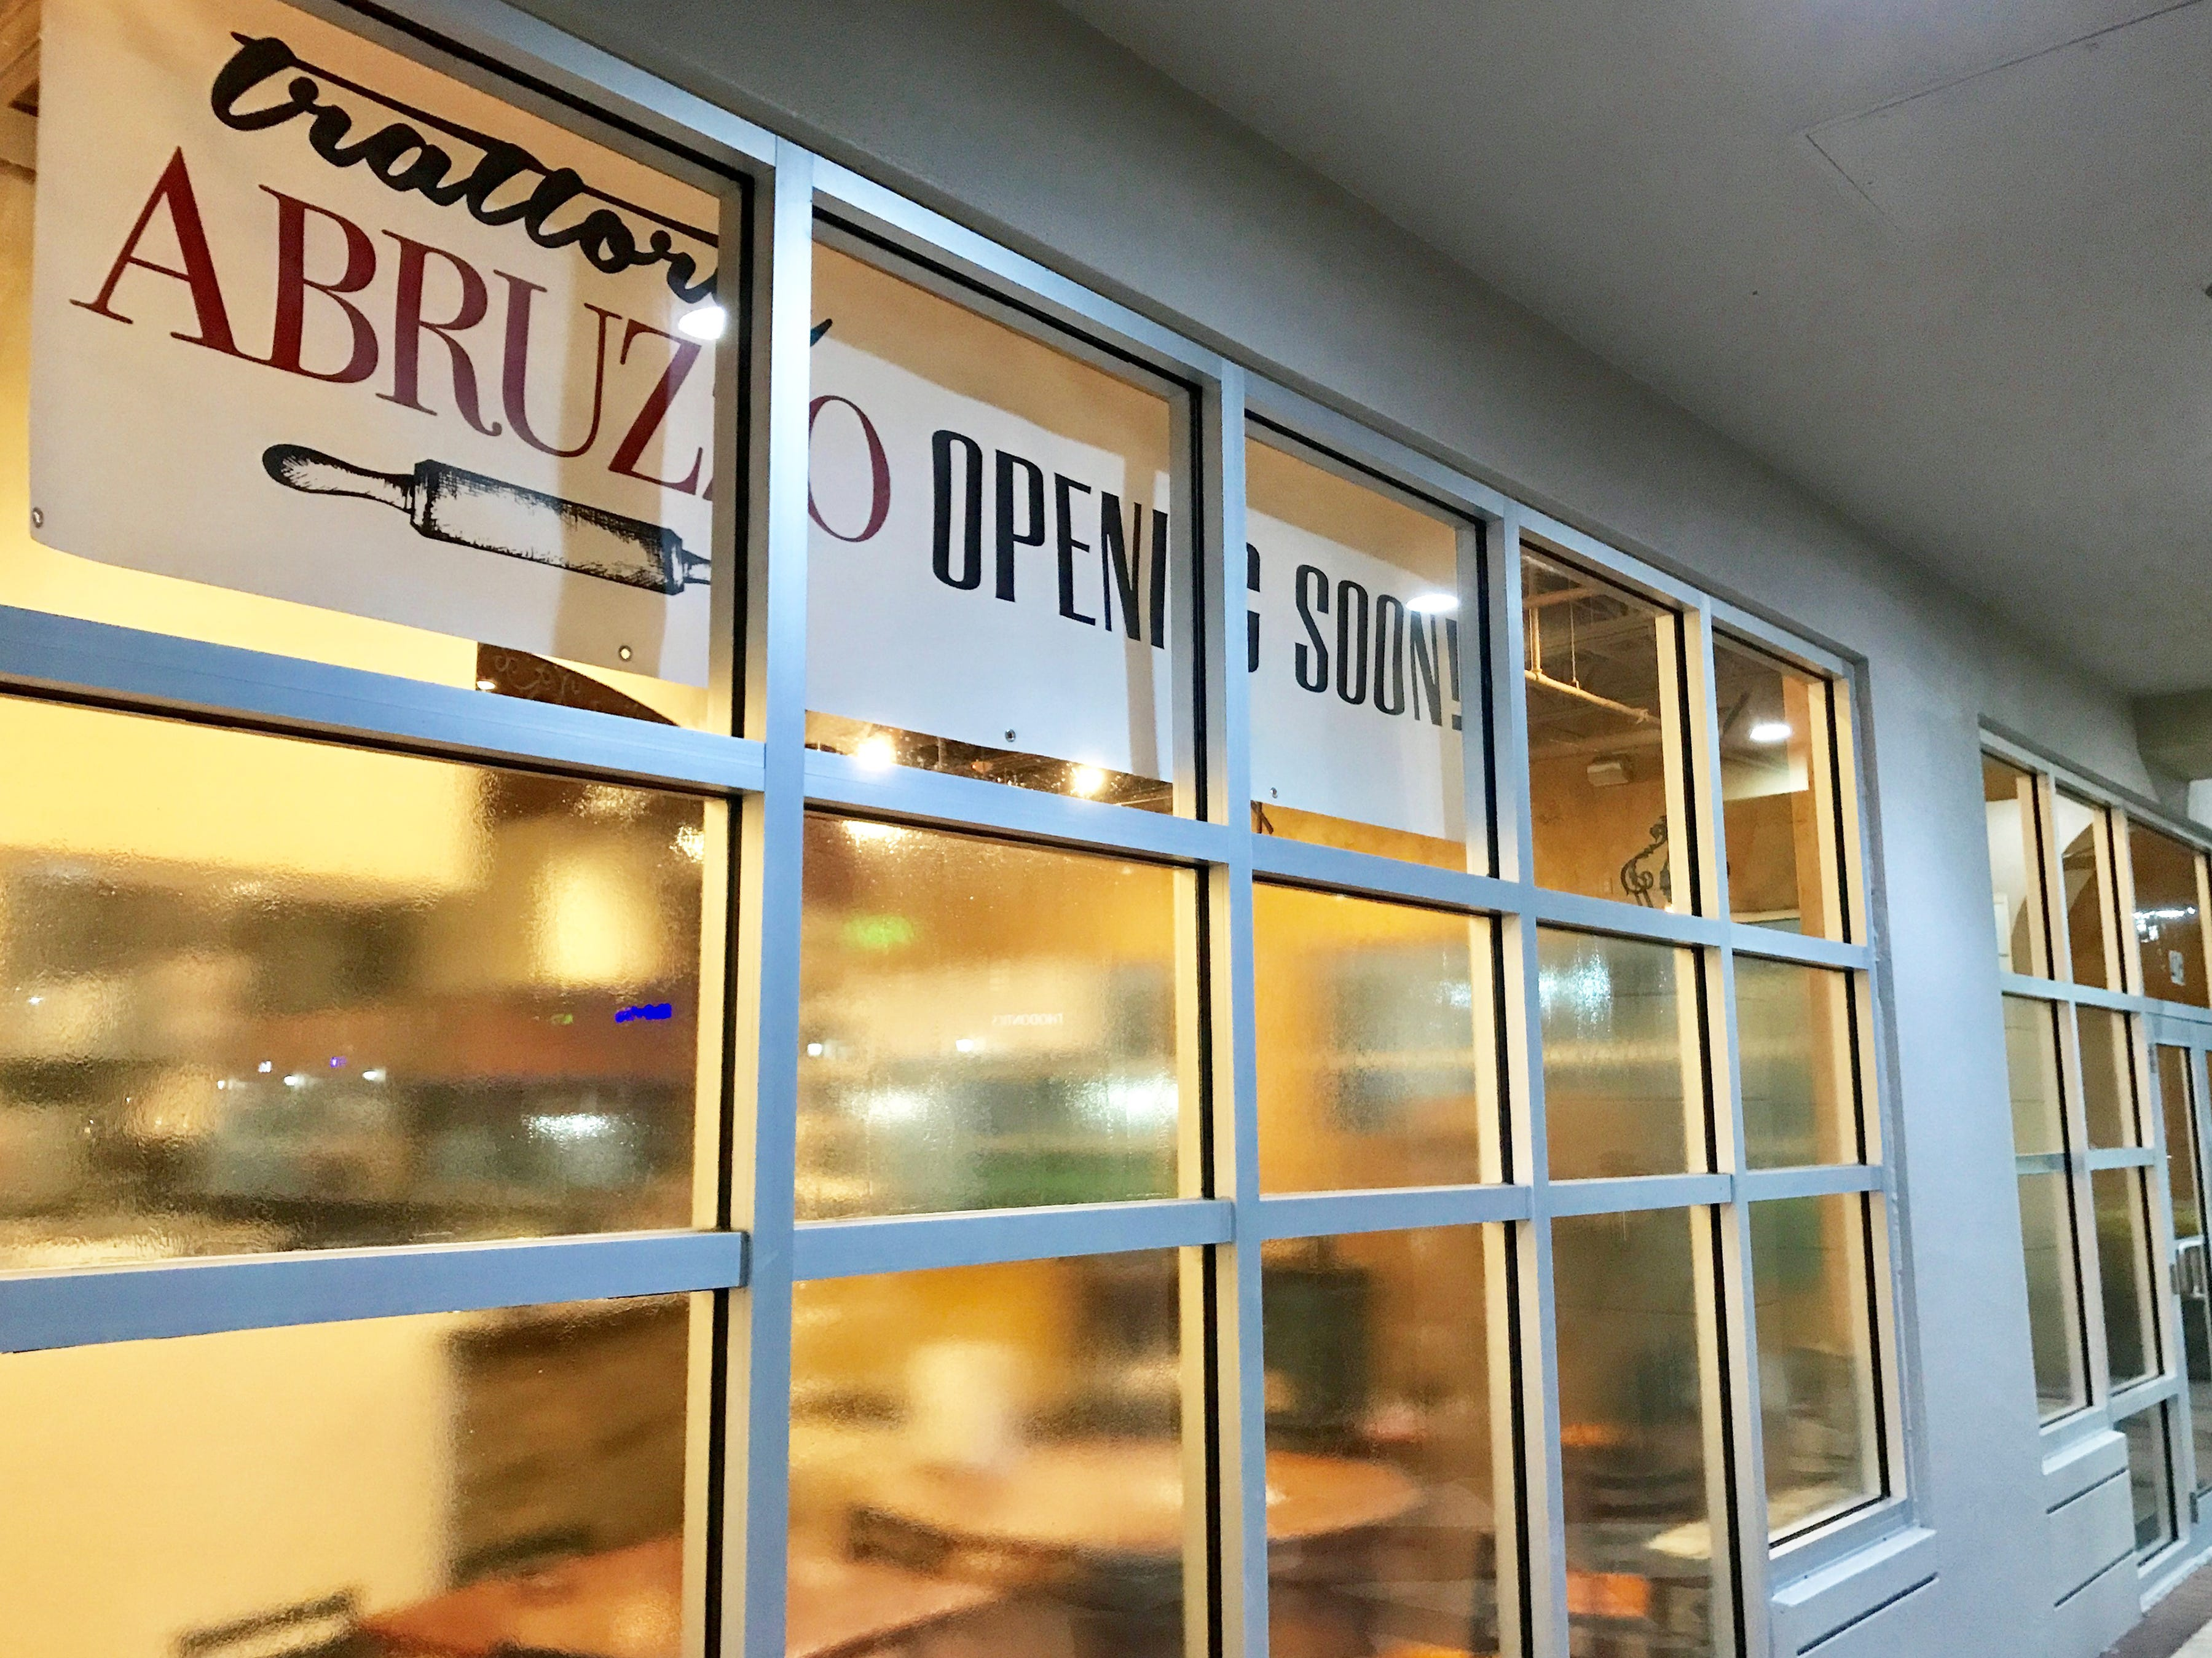 The second location of Trattoria Abruzzo is expected to open in January 2019 in the former space of Cafe Alfredo at Galleria Shoppes at Vanderbilt in North Naples.